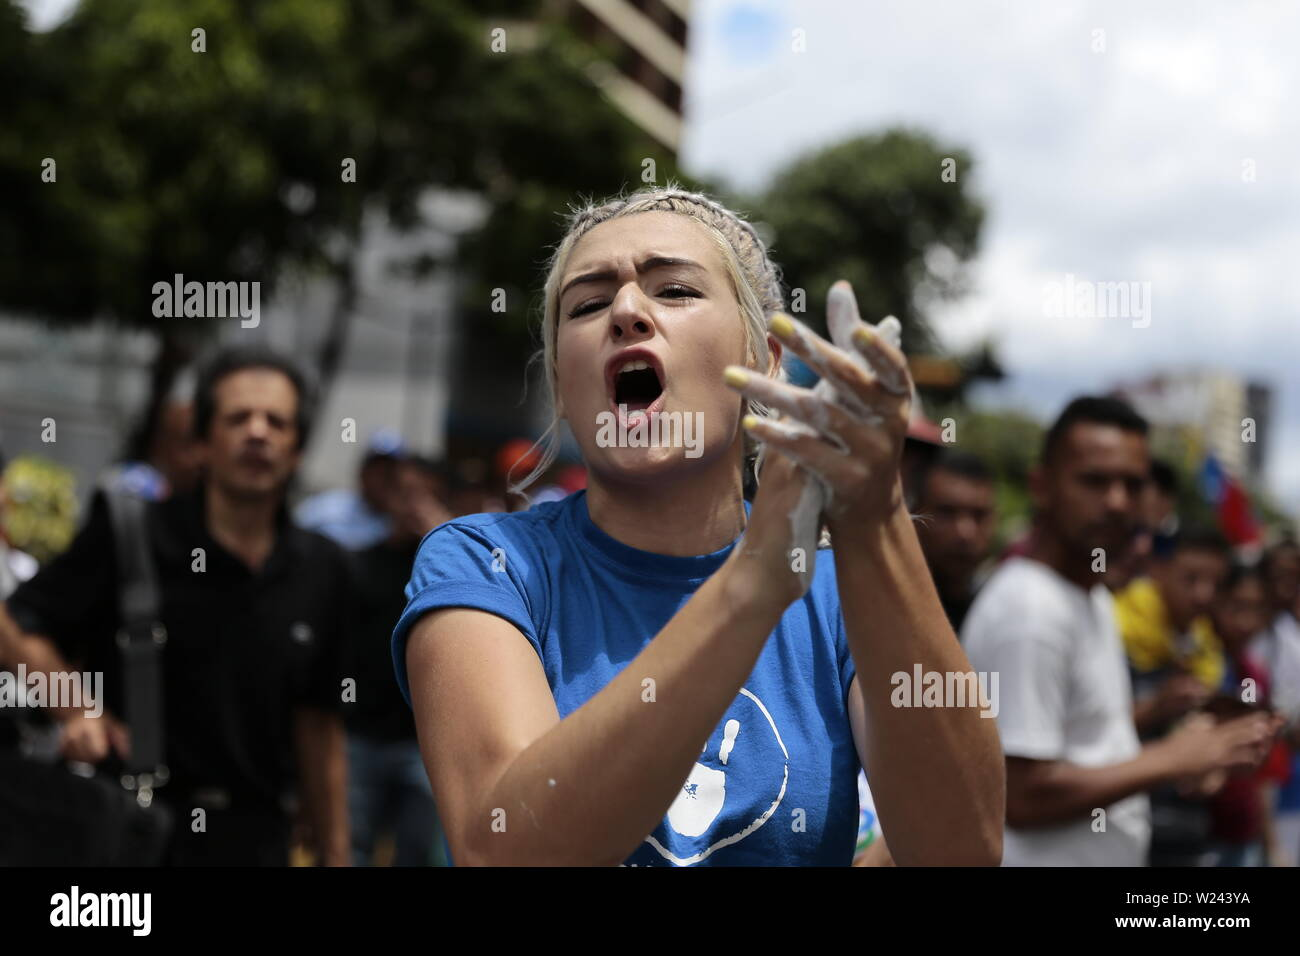 Caracas, Venezuela. 05th July, 2019. A demonstrator shouting political slogans in a protest against the government of head of state Maduro on the day of independence from Venezuela. The opposition leader and self-appointed interim president Guaido had called on civil society to protest against the government of head of state Maduro. Venezuela commemorates on July 5 the independence of Spain in 1811. Credit: Rafael Hernandez/dpa/Alamy Live News - Stock Image